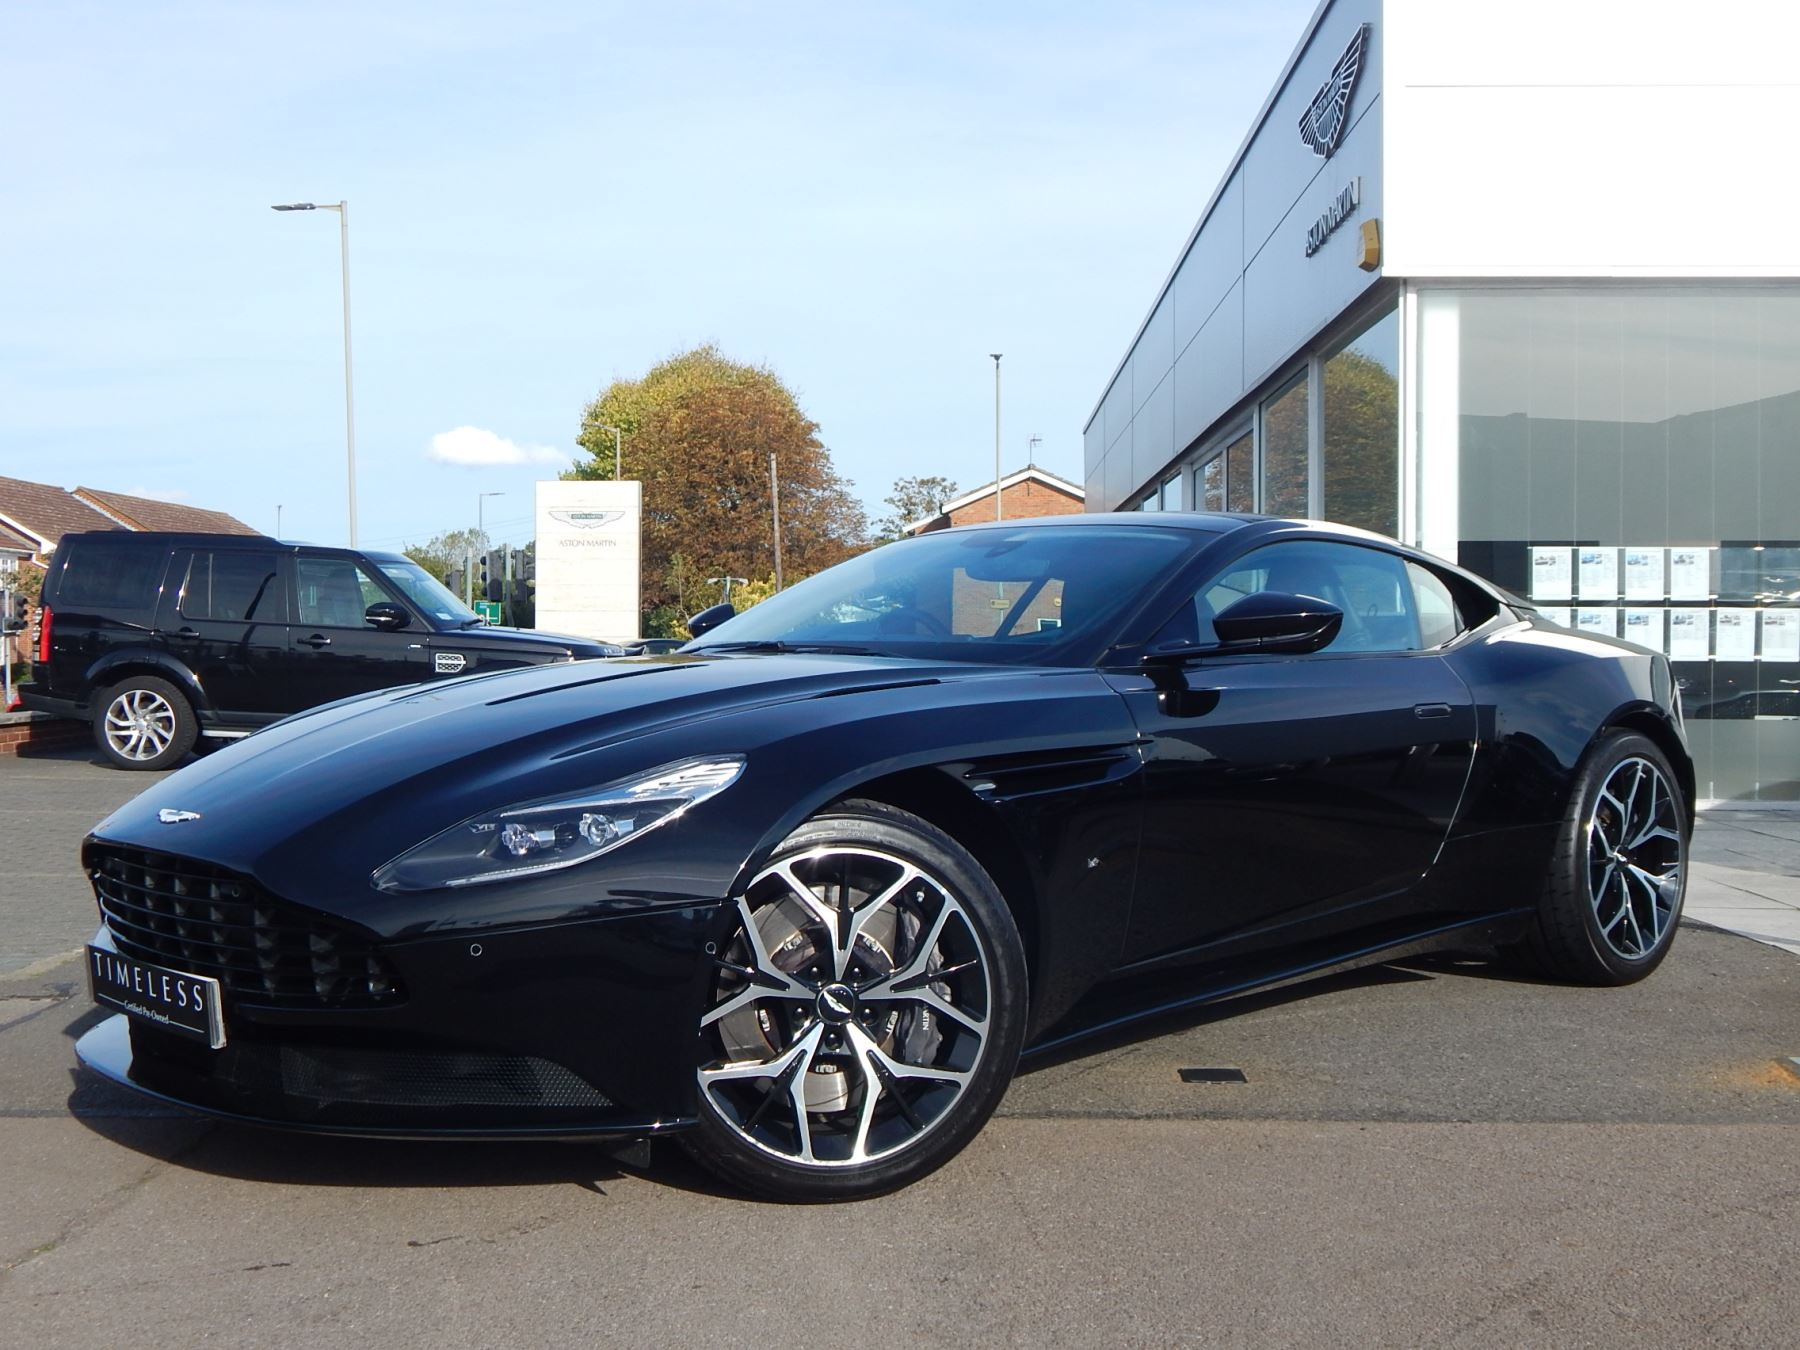 Aston Martin DB11 V12 2dr Touchtronic 5.2 Automatic Coupe (2019)